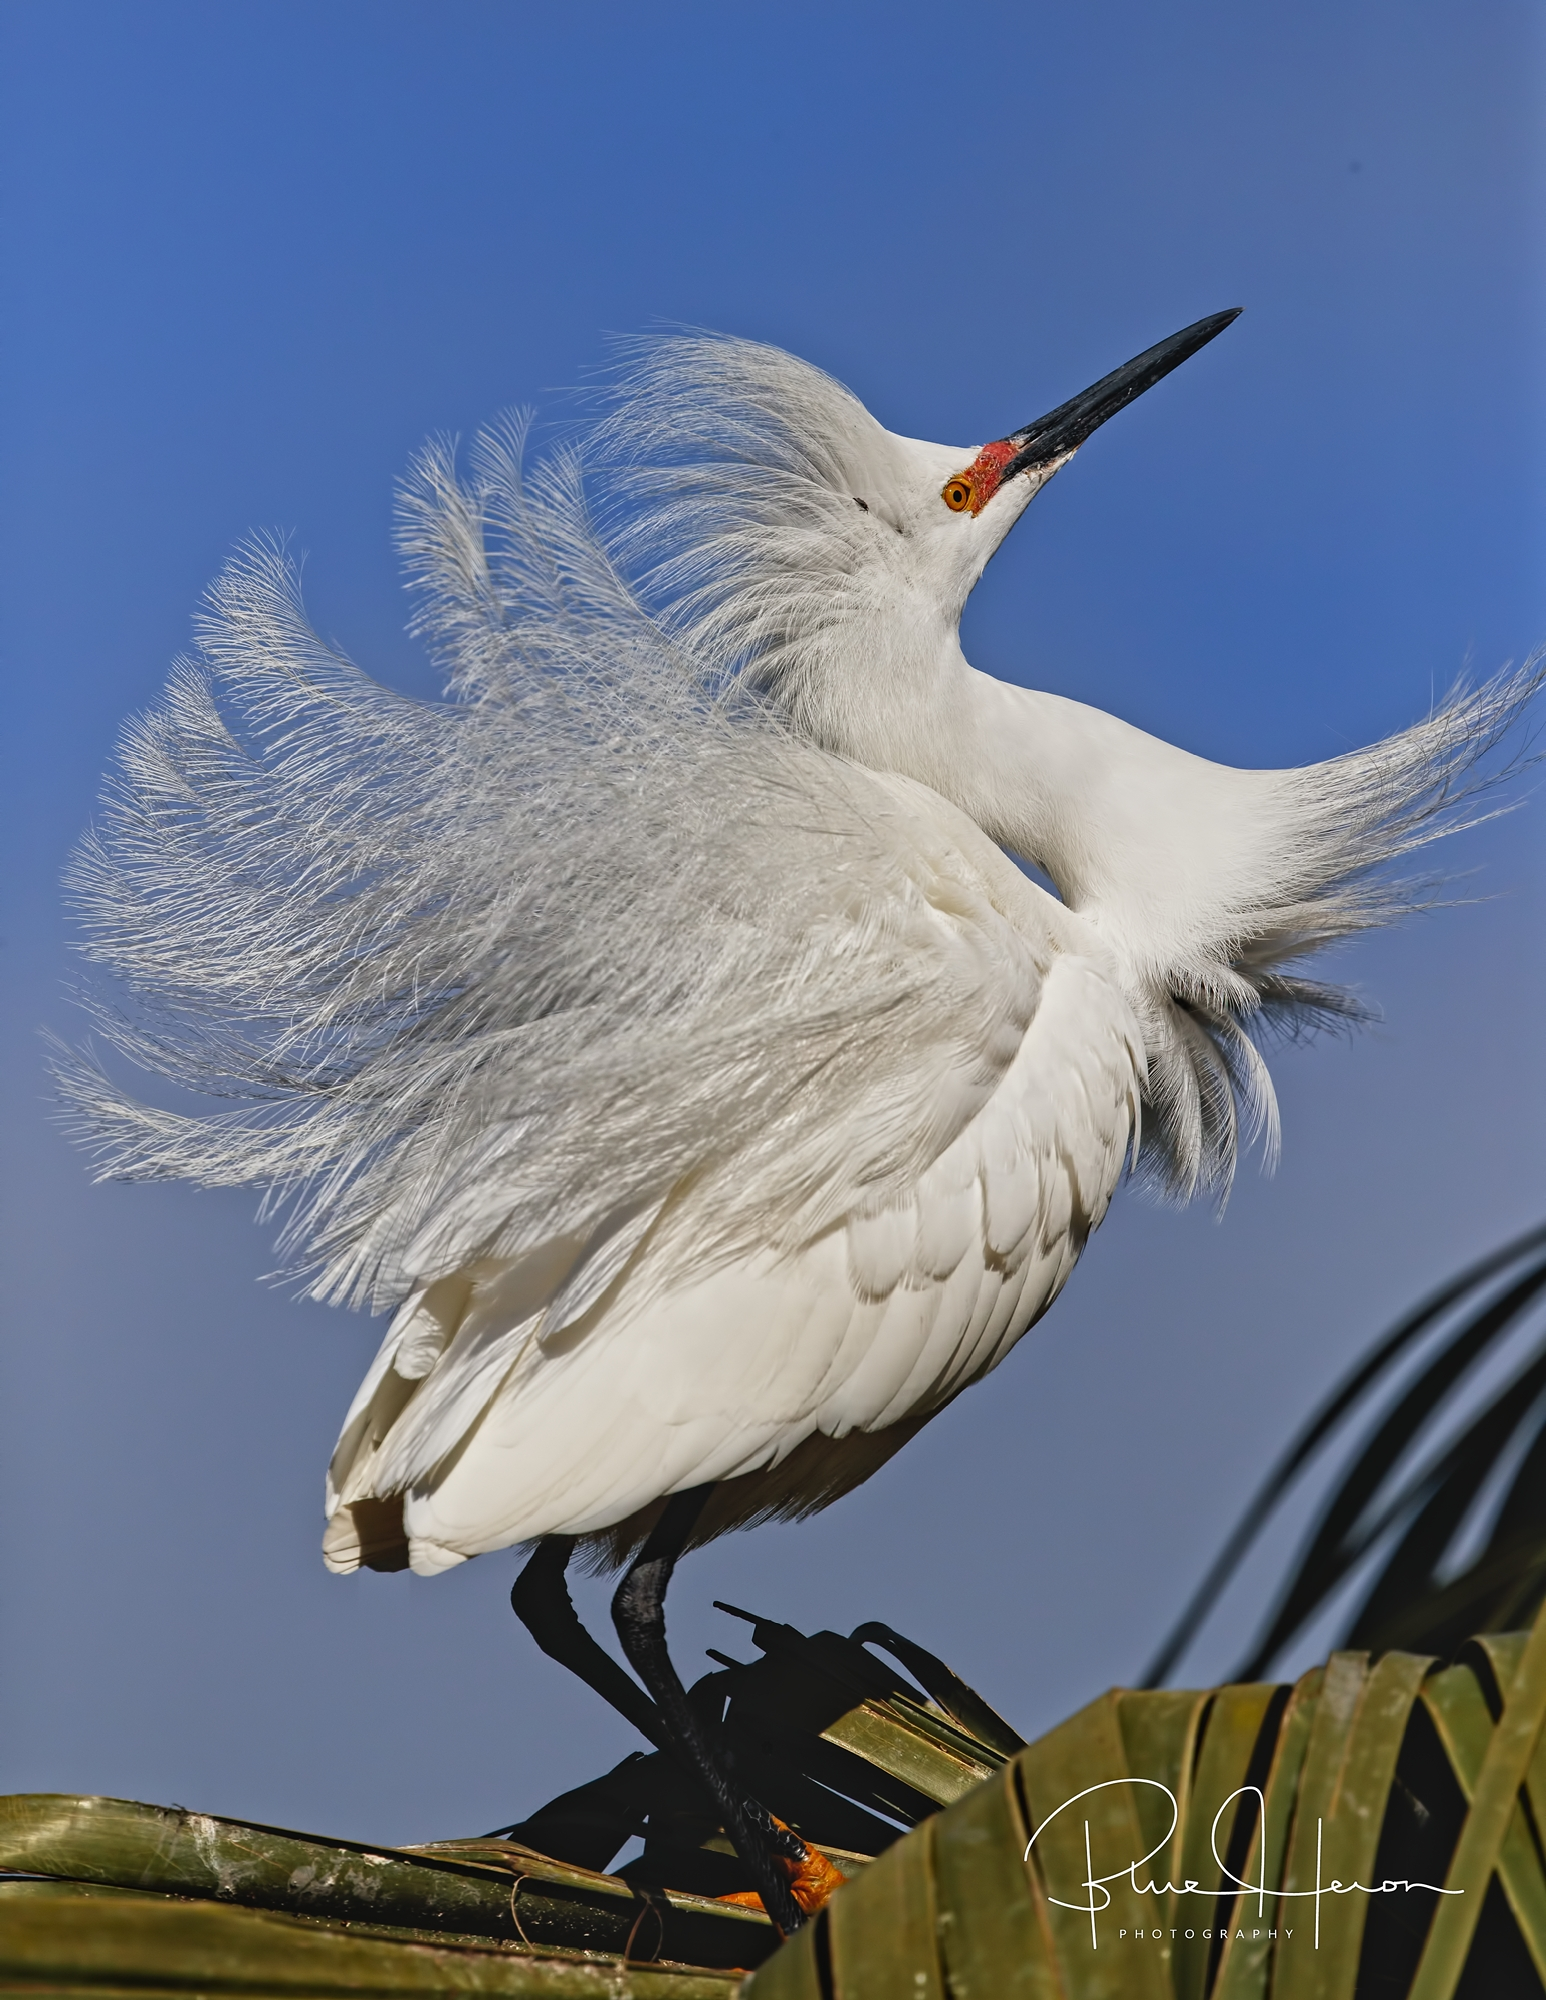 Those Great Egrets got nothing on me says the Snowy!